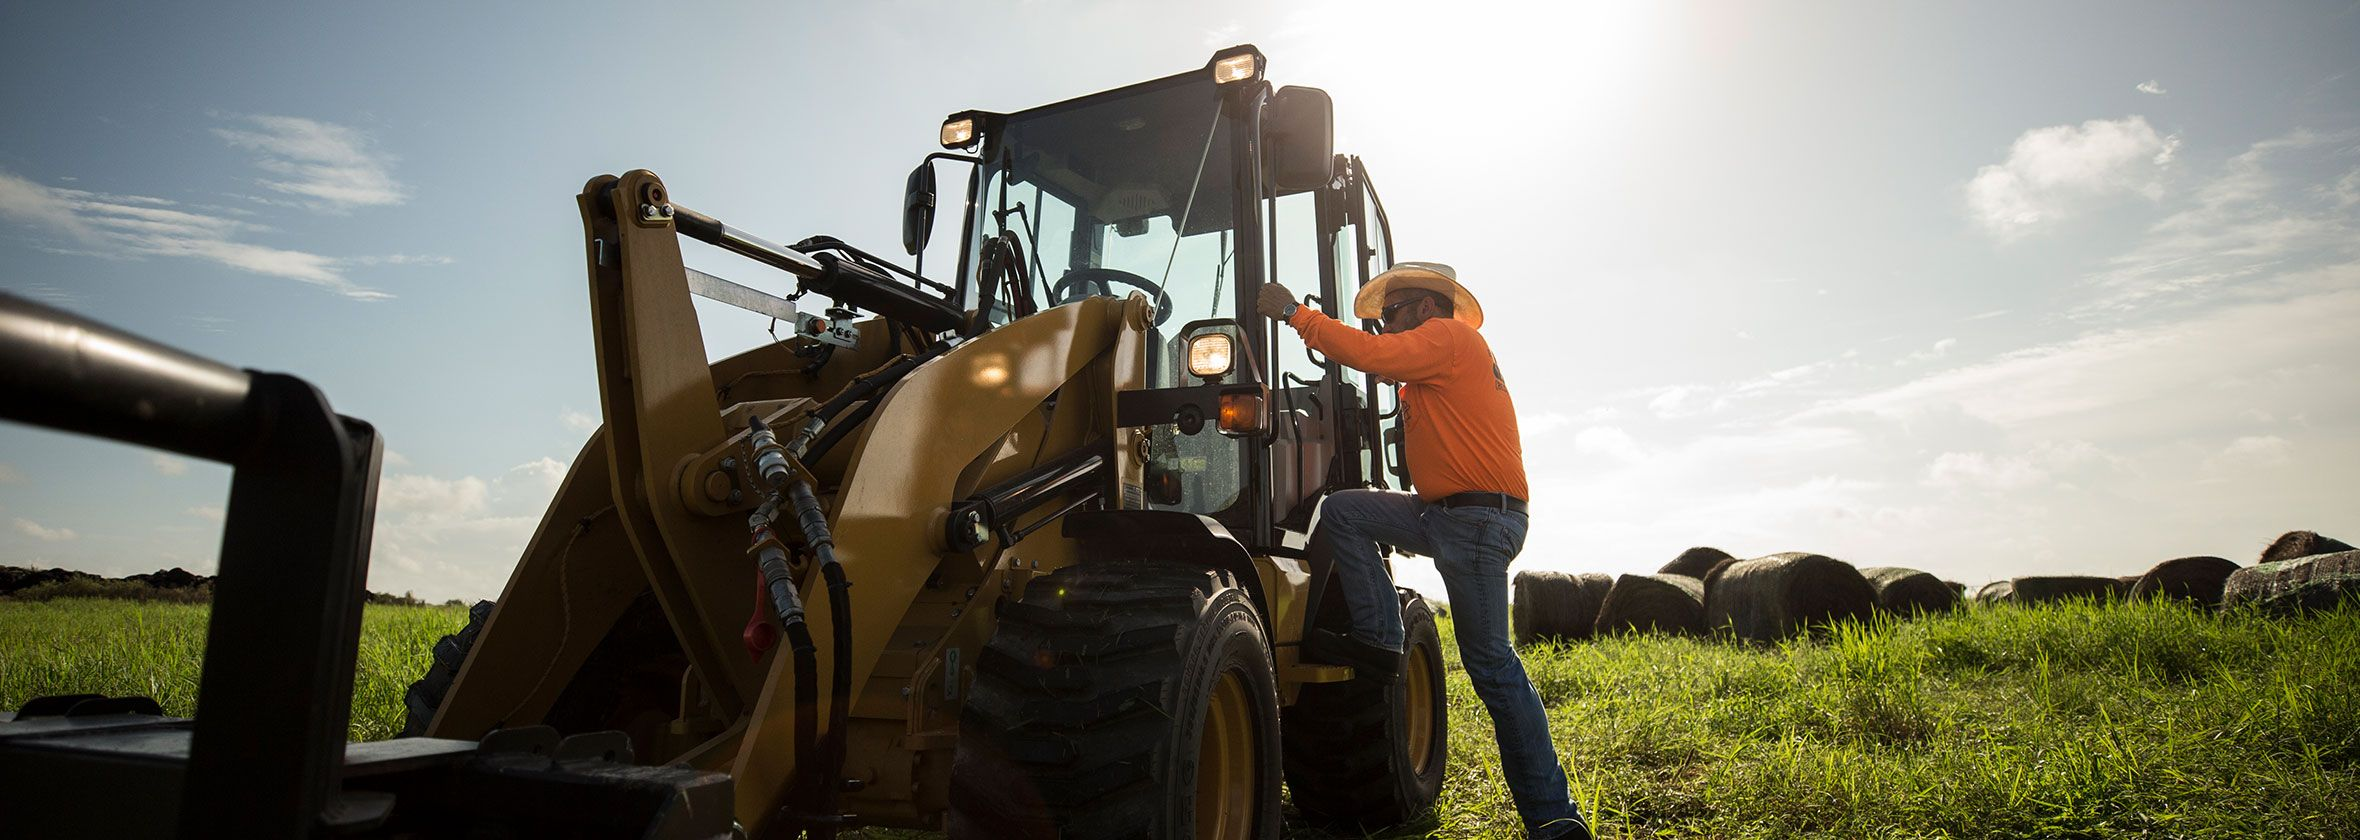 7 Tips and What To Look for When Buying a Used Tractor